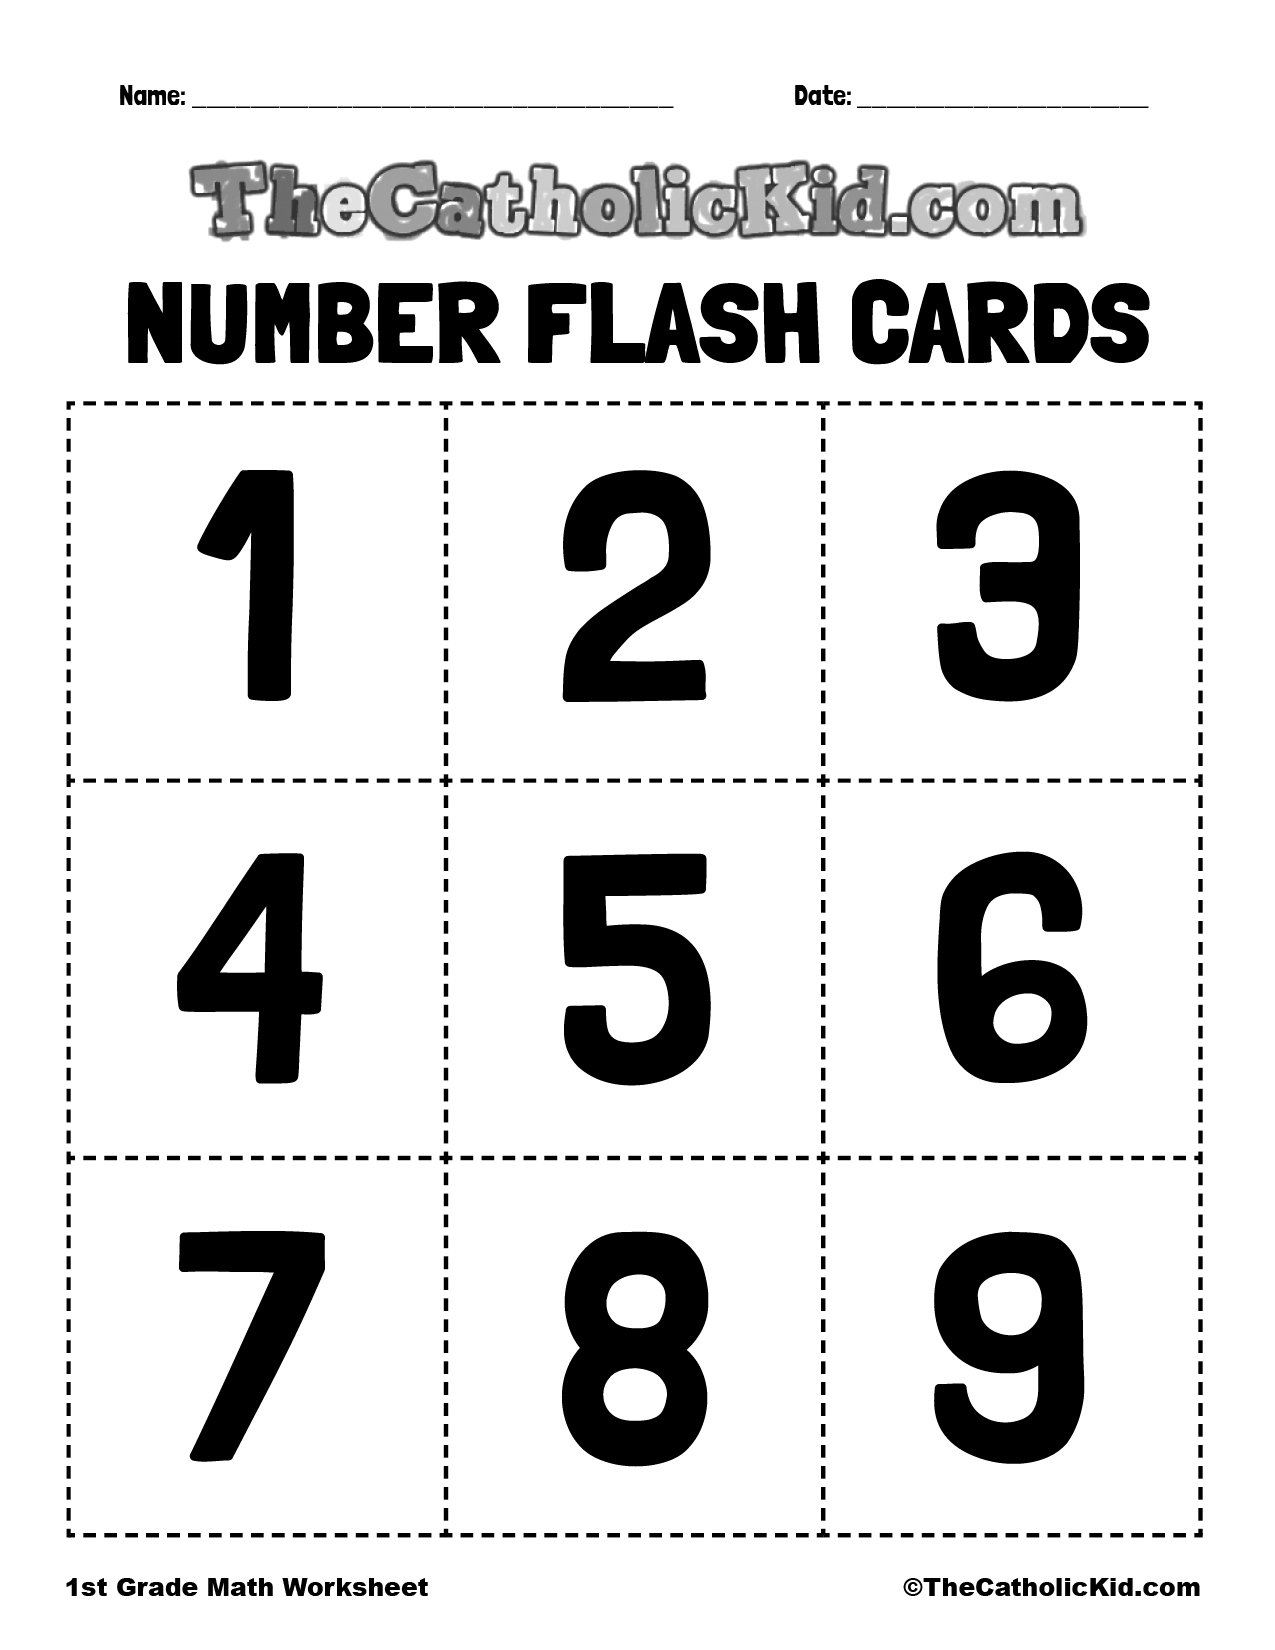 Number Flash Cards 1-9 - 1st Grade Math Worksheet Catholic